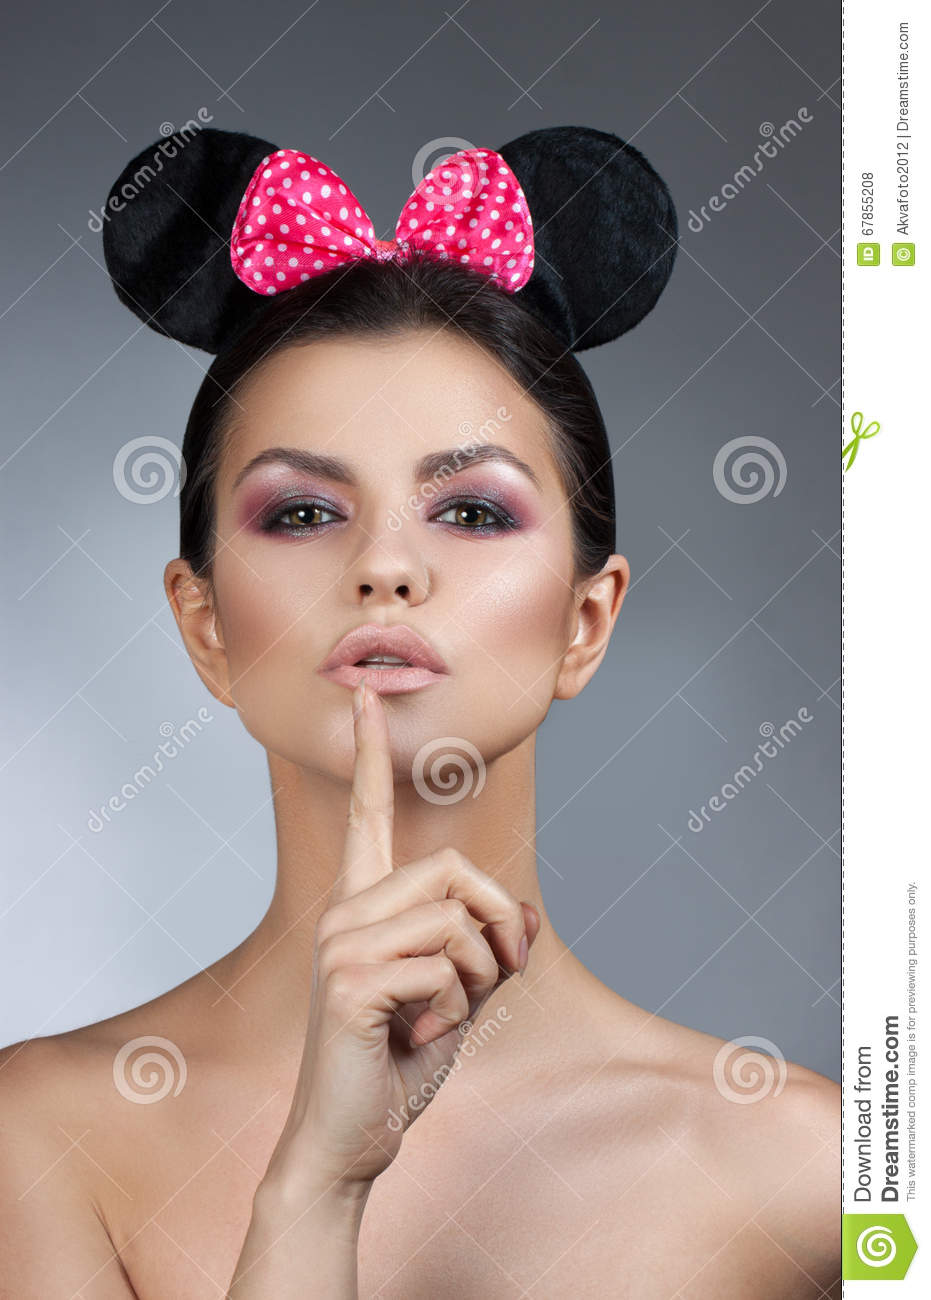 Professional Make Up Artist: Style Woman Portrait Perfect Face, Professional Make